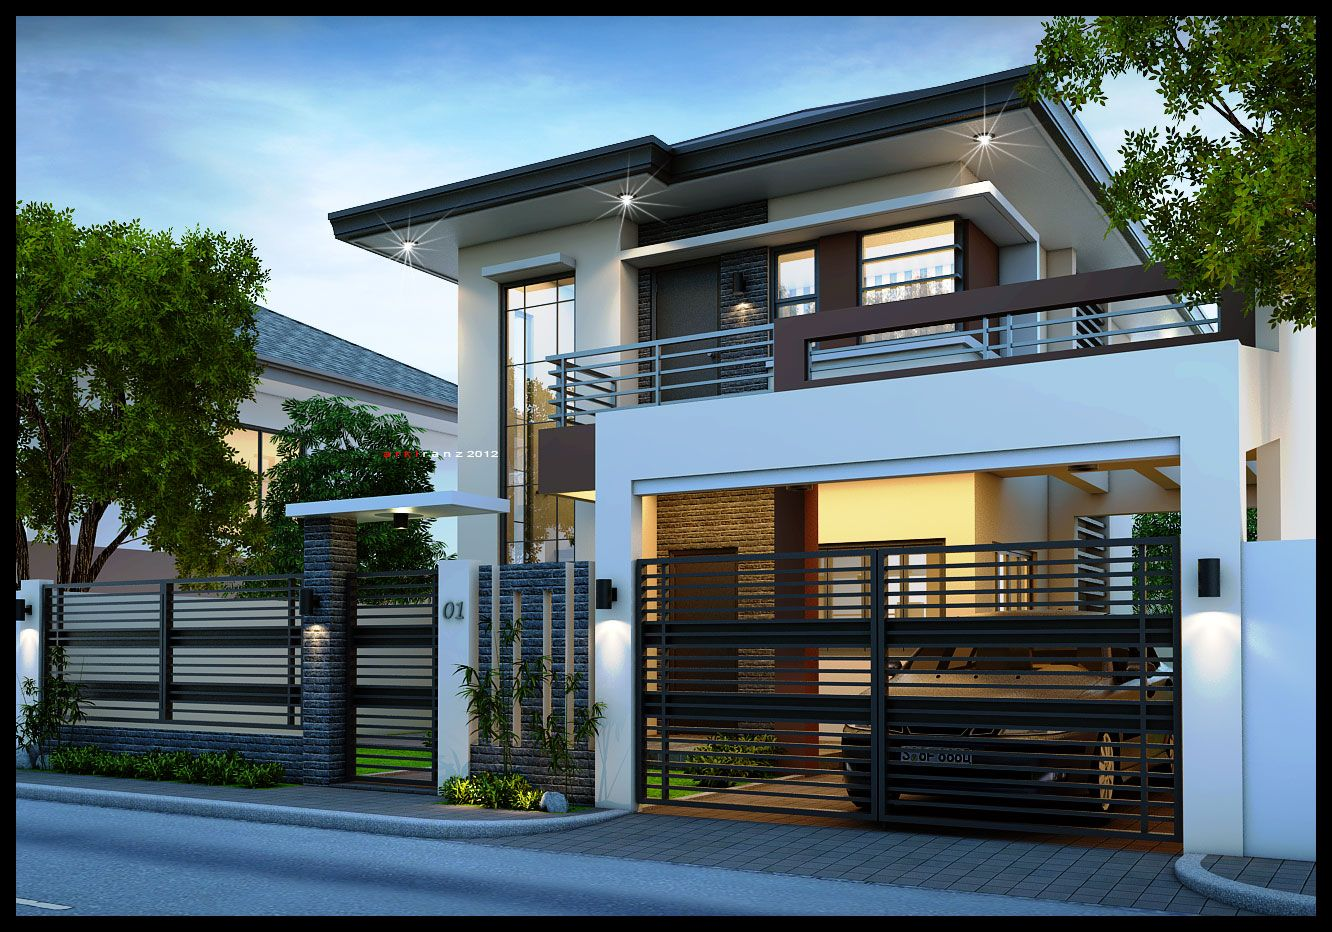 Simple two story house designs philippines also homes ideas in rh pinterest